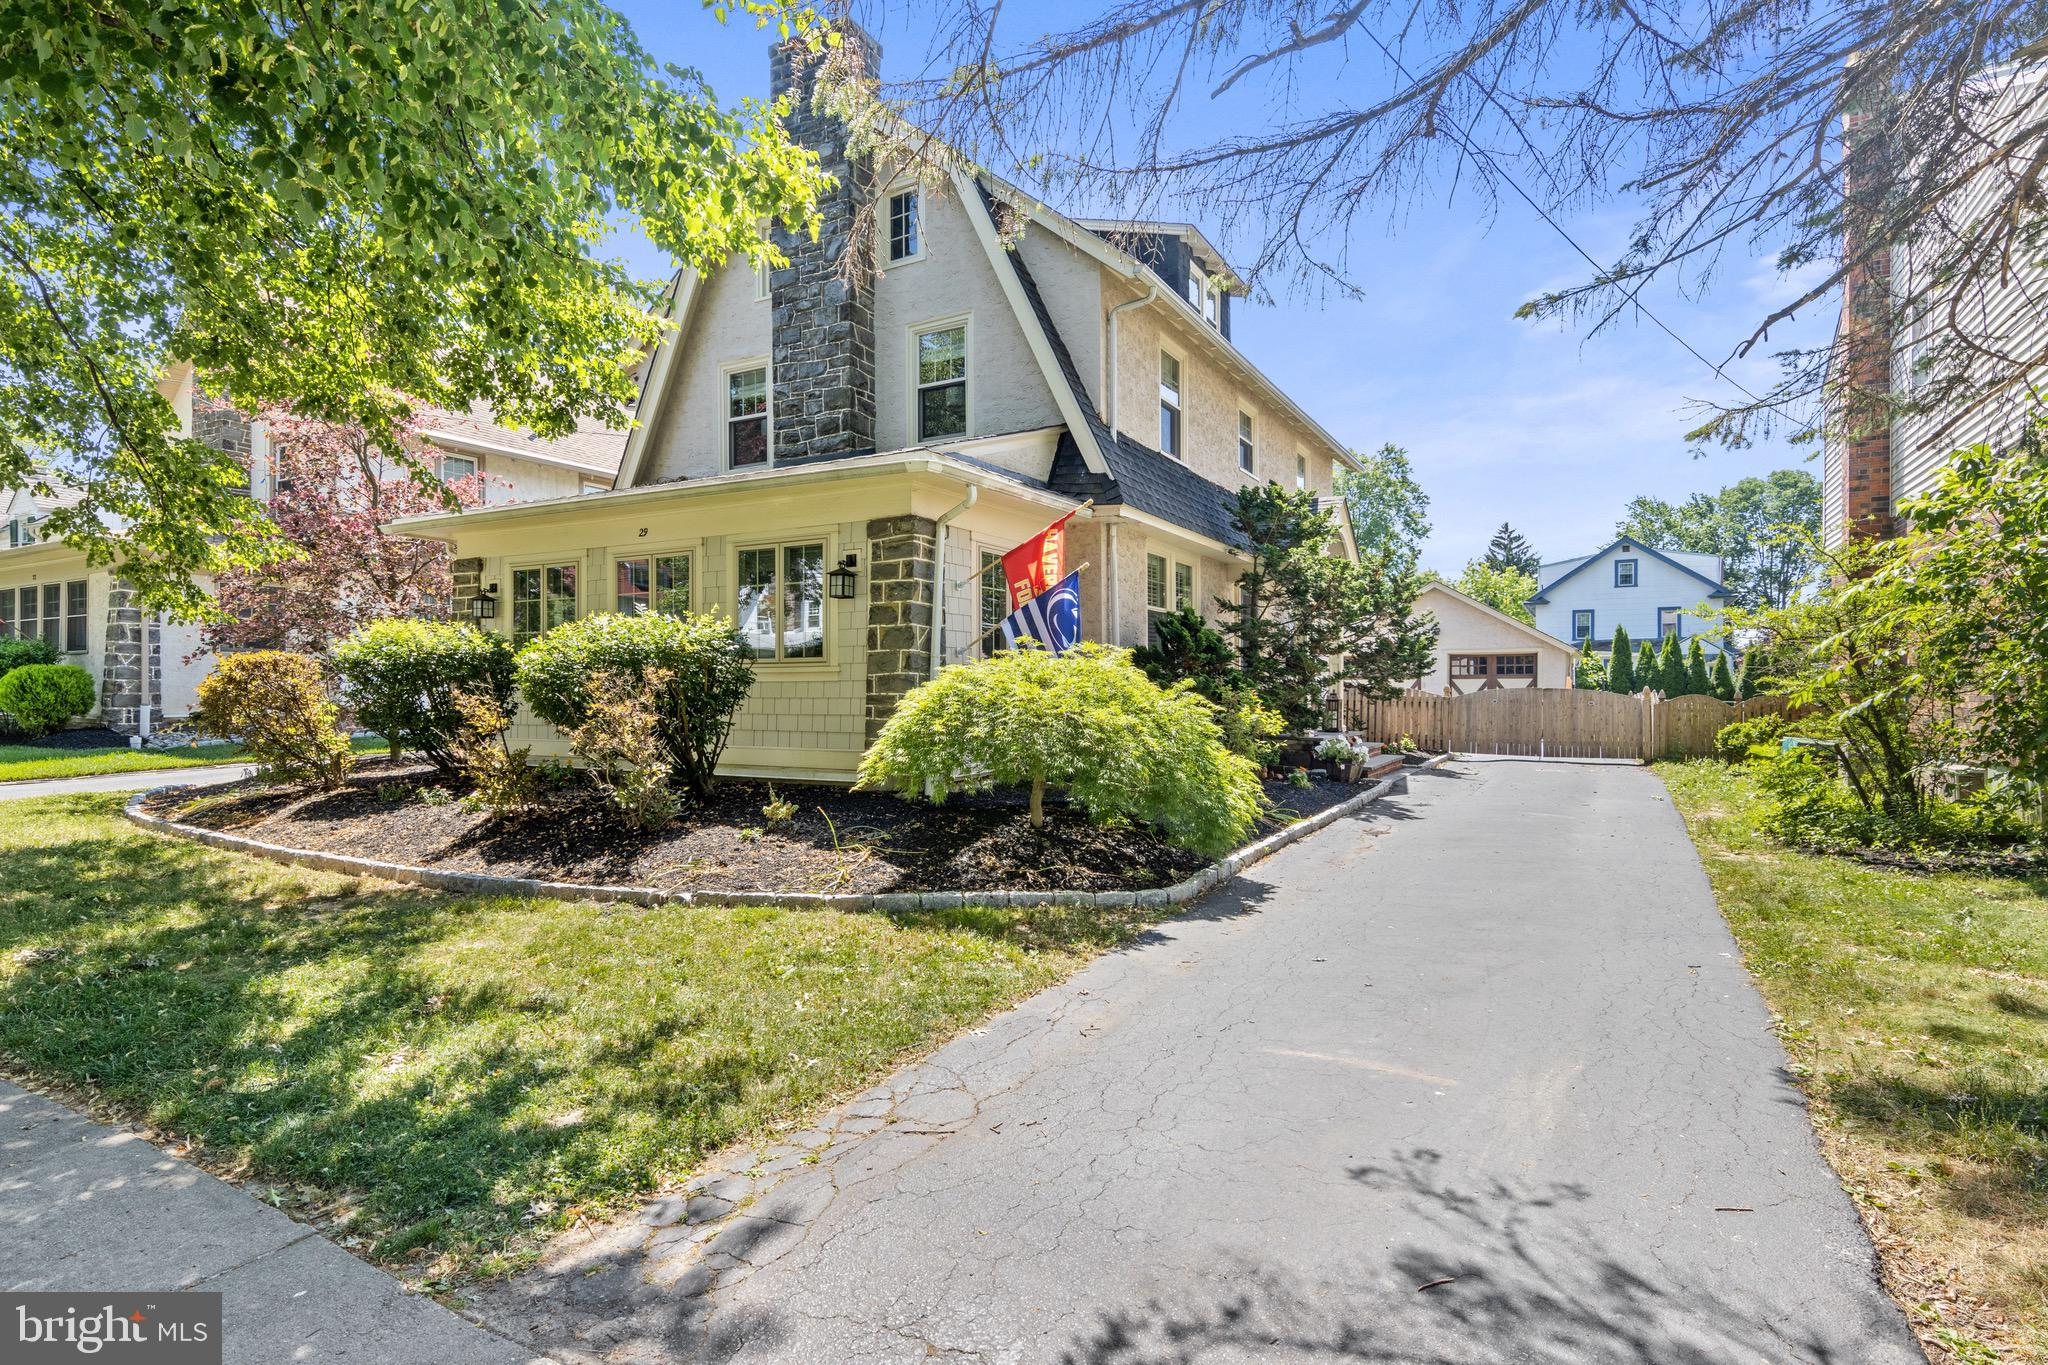 29 W Clearfield Road, Havertown, PA 19083